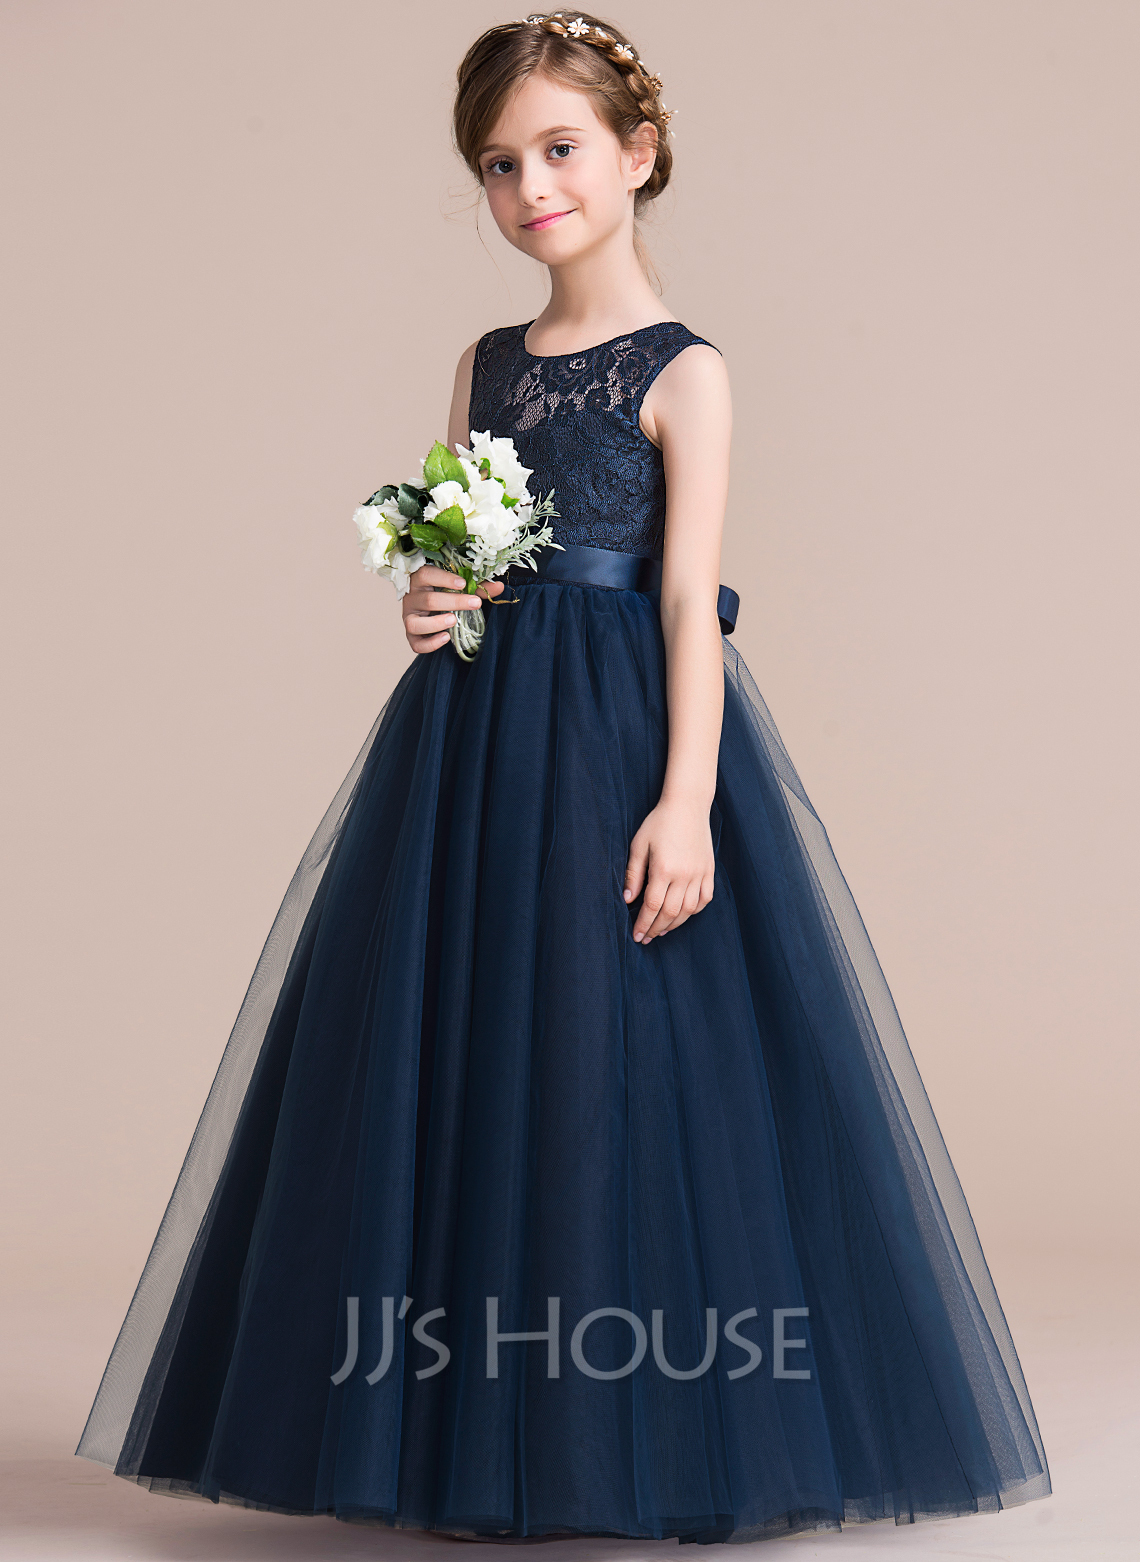 A Lineprincess Floor Length Flower Girl Dress Satintullelace